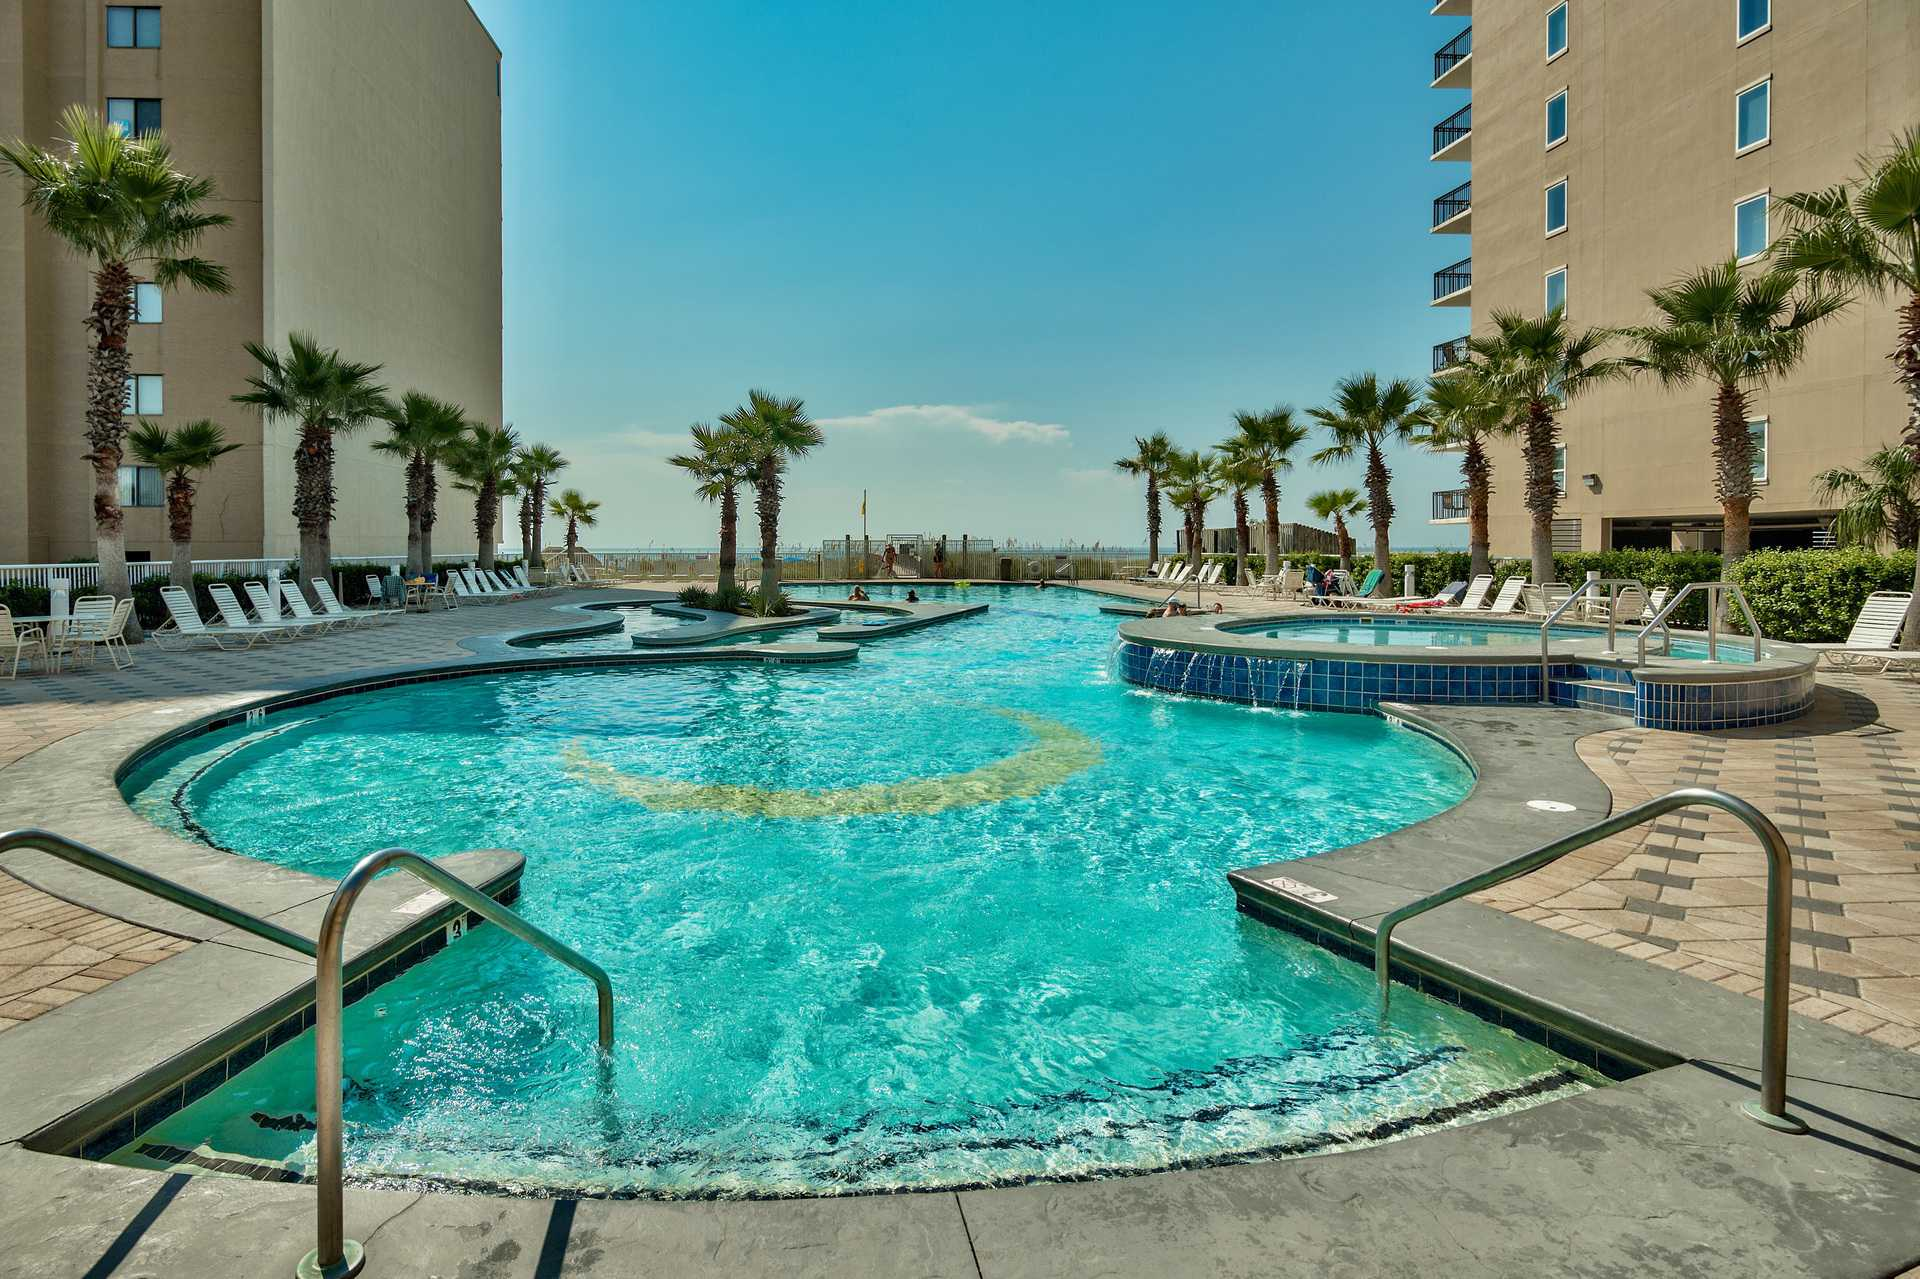 Crystal Tower Gulf Shores AL -  vacation rental by owner